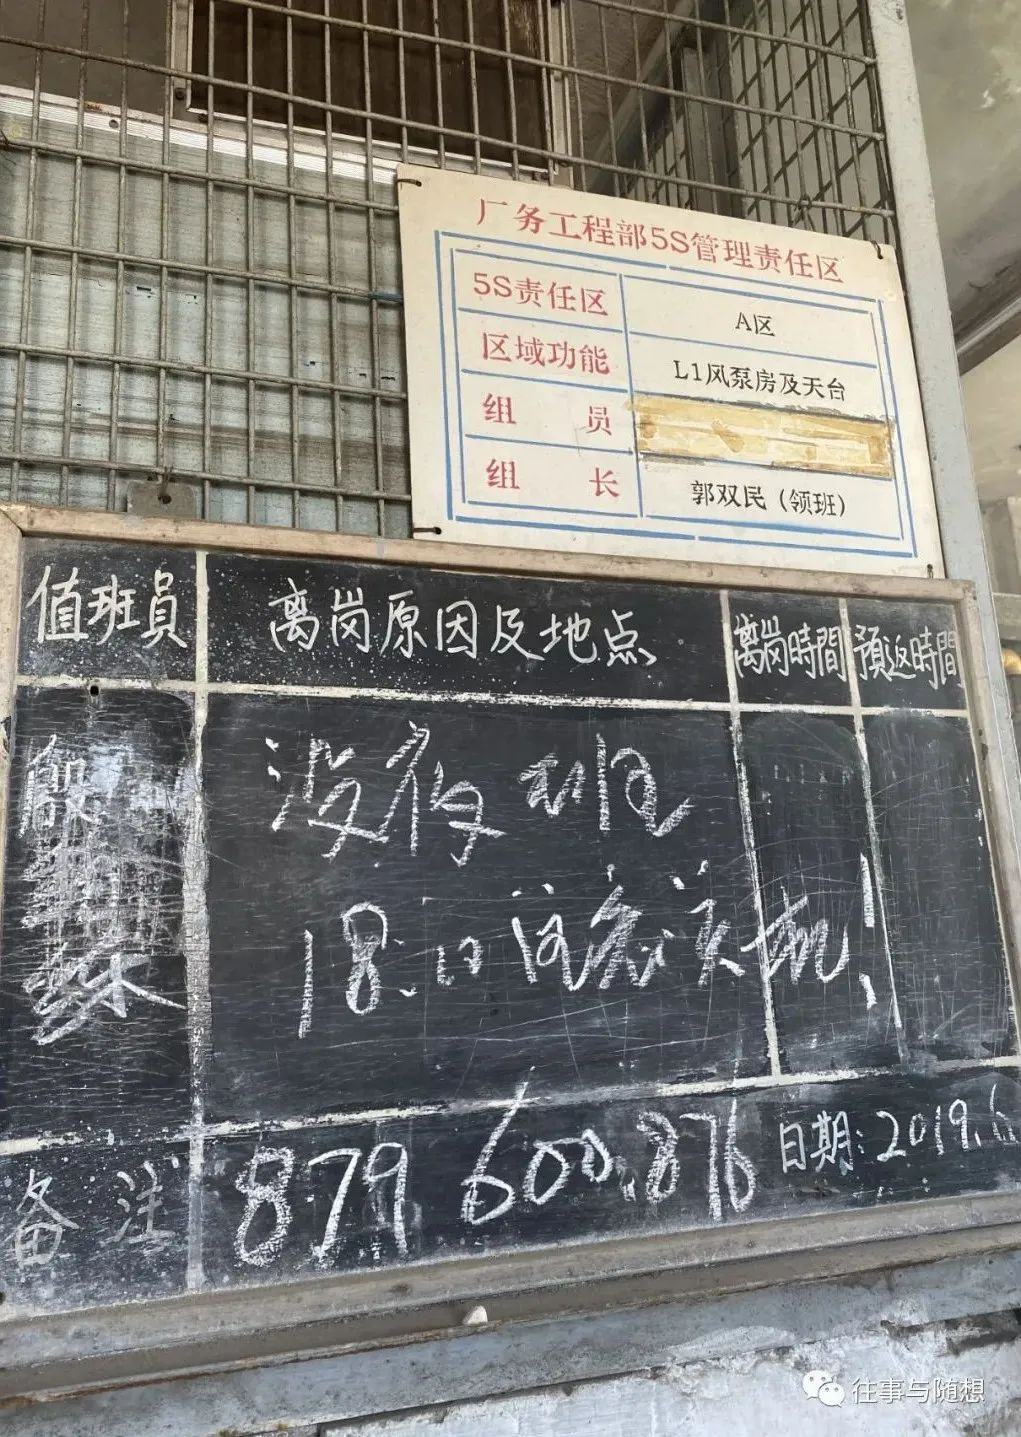 Close-up of some work-related signage and a blackboard with notes about workers' shifts